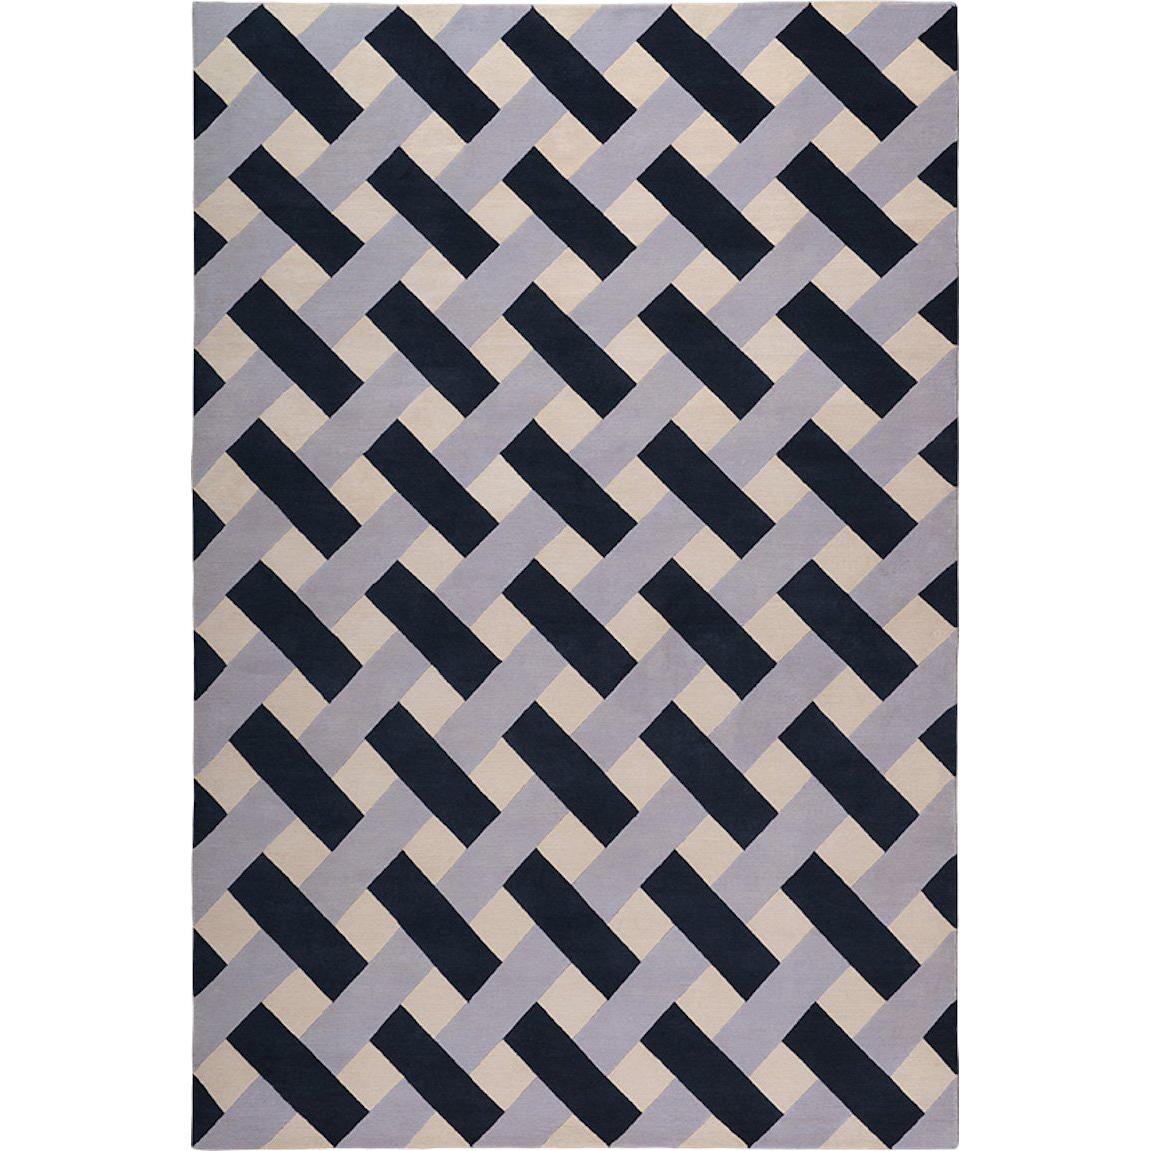 Parisio Hand-Knotted 10x8 Rug in Wool by Suzanne Sharp